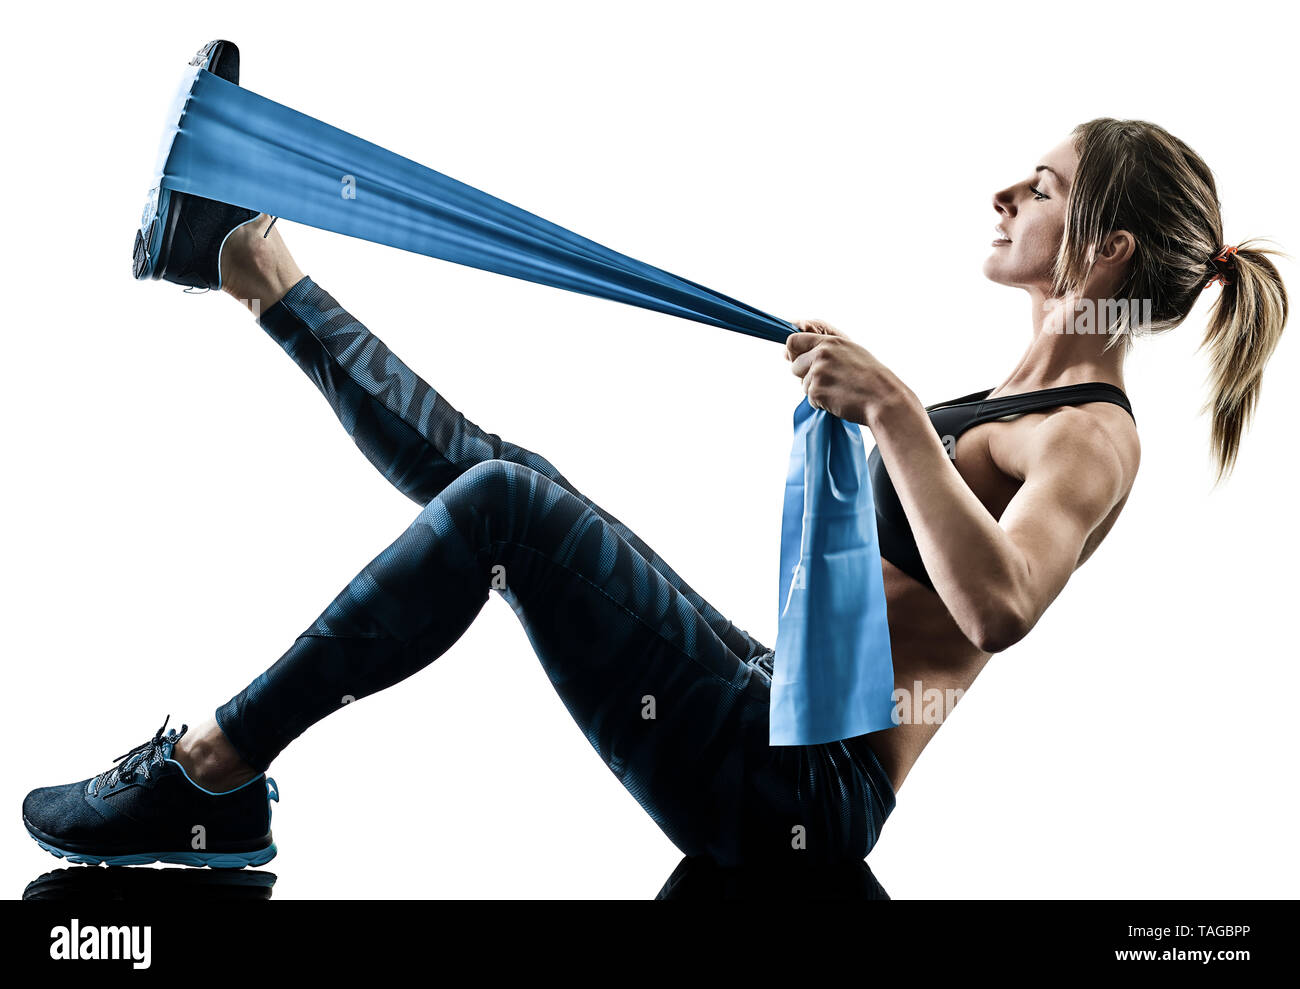 Abs Resistance Band Woman High Resolution Stock Photography And